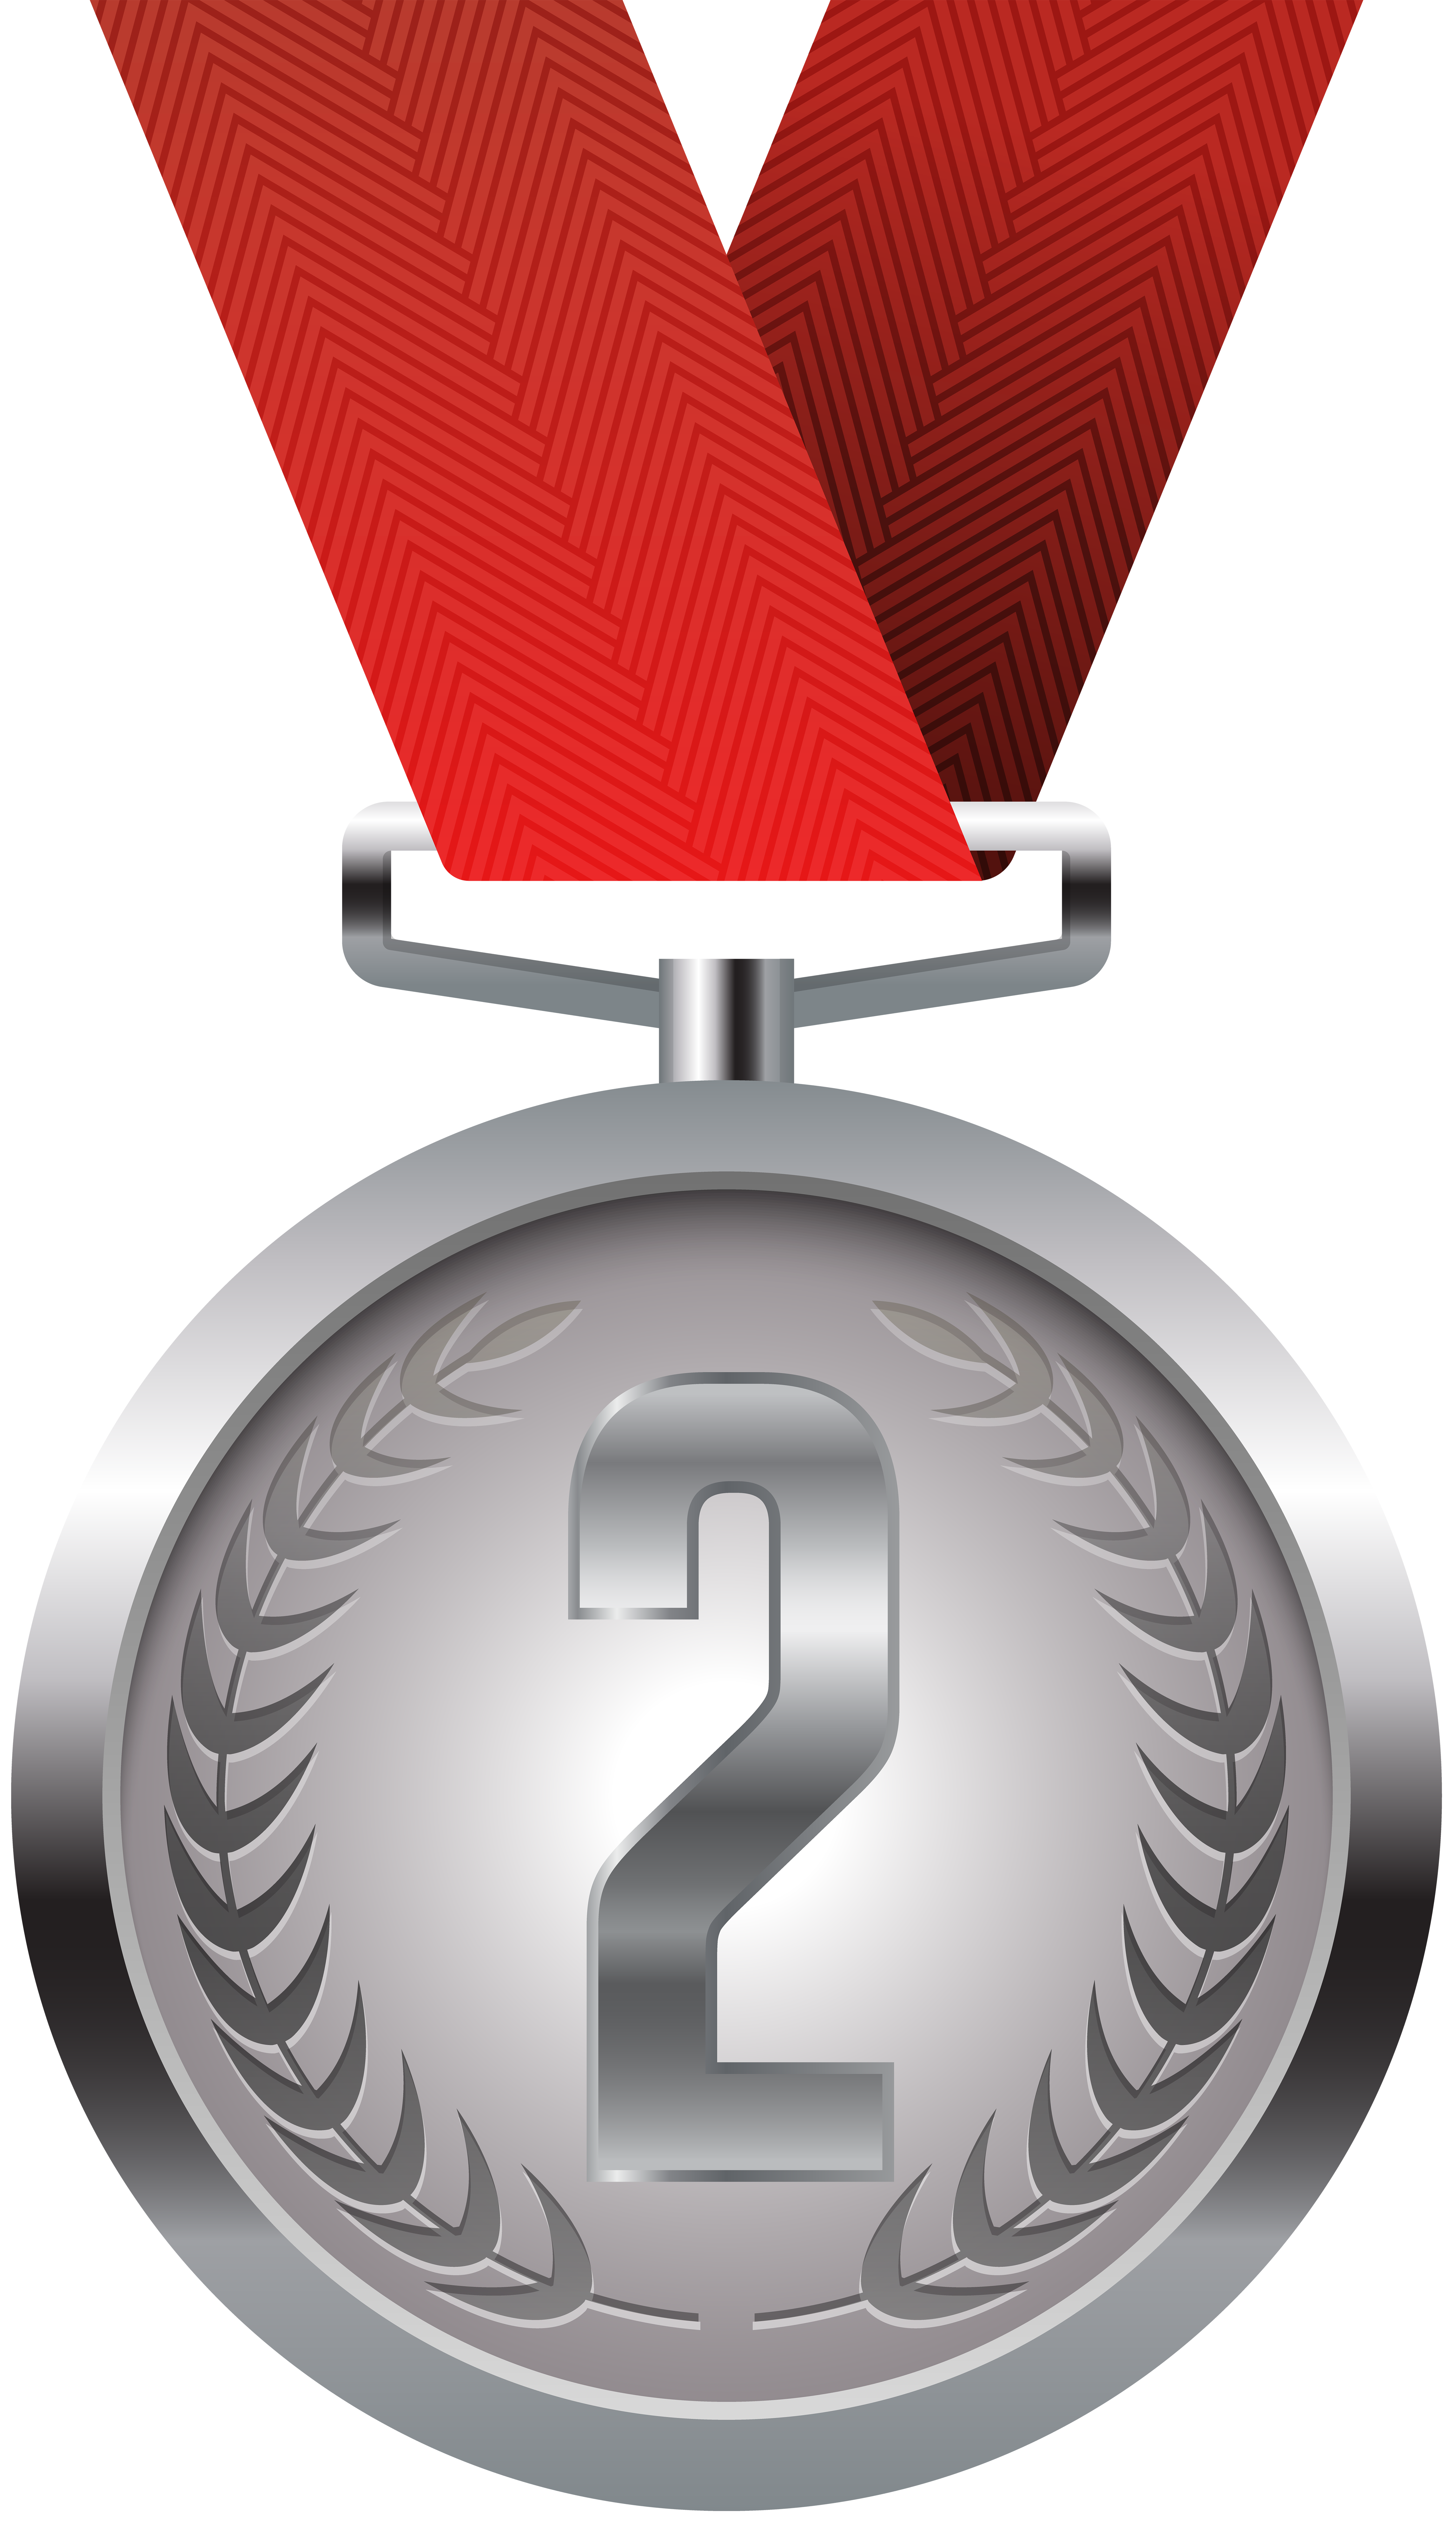 Silver Medal PNG Clip Art.